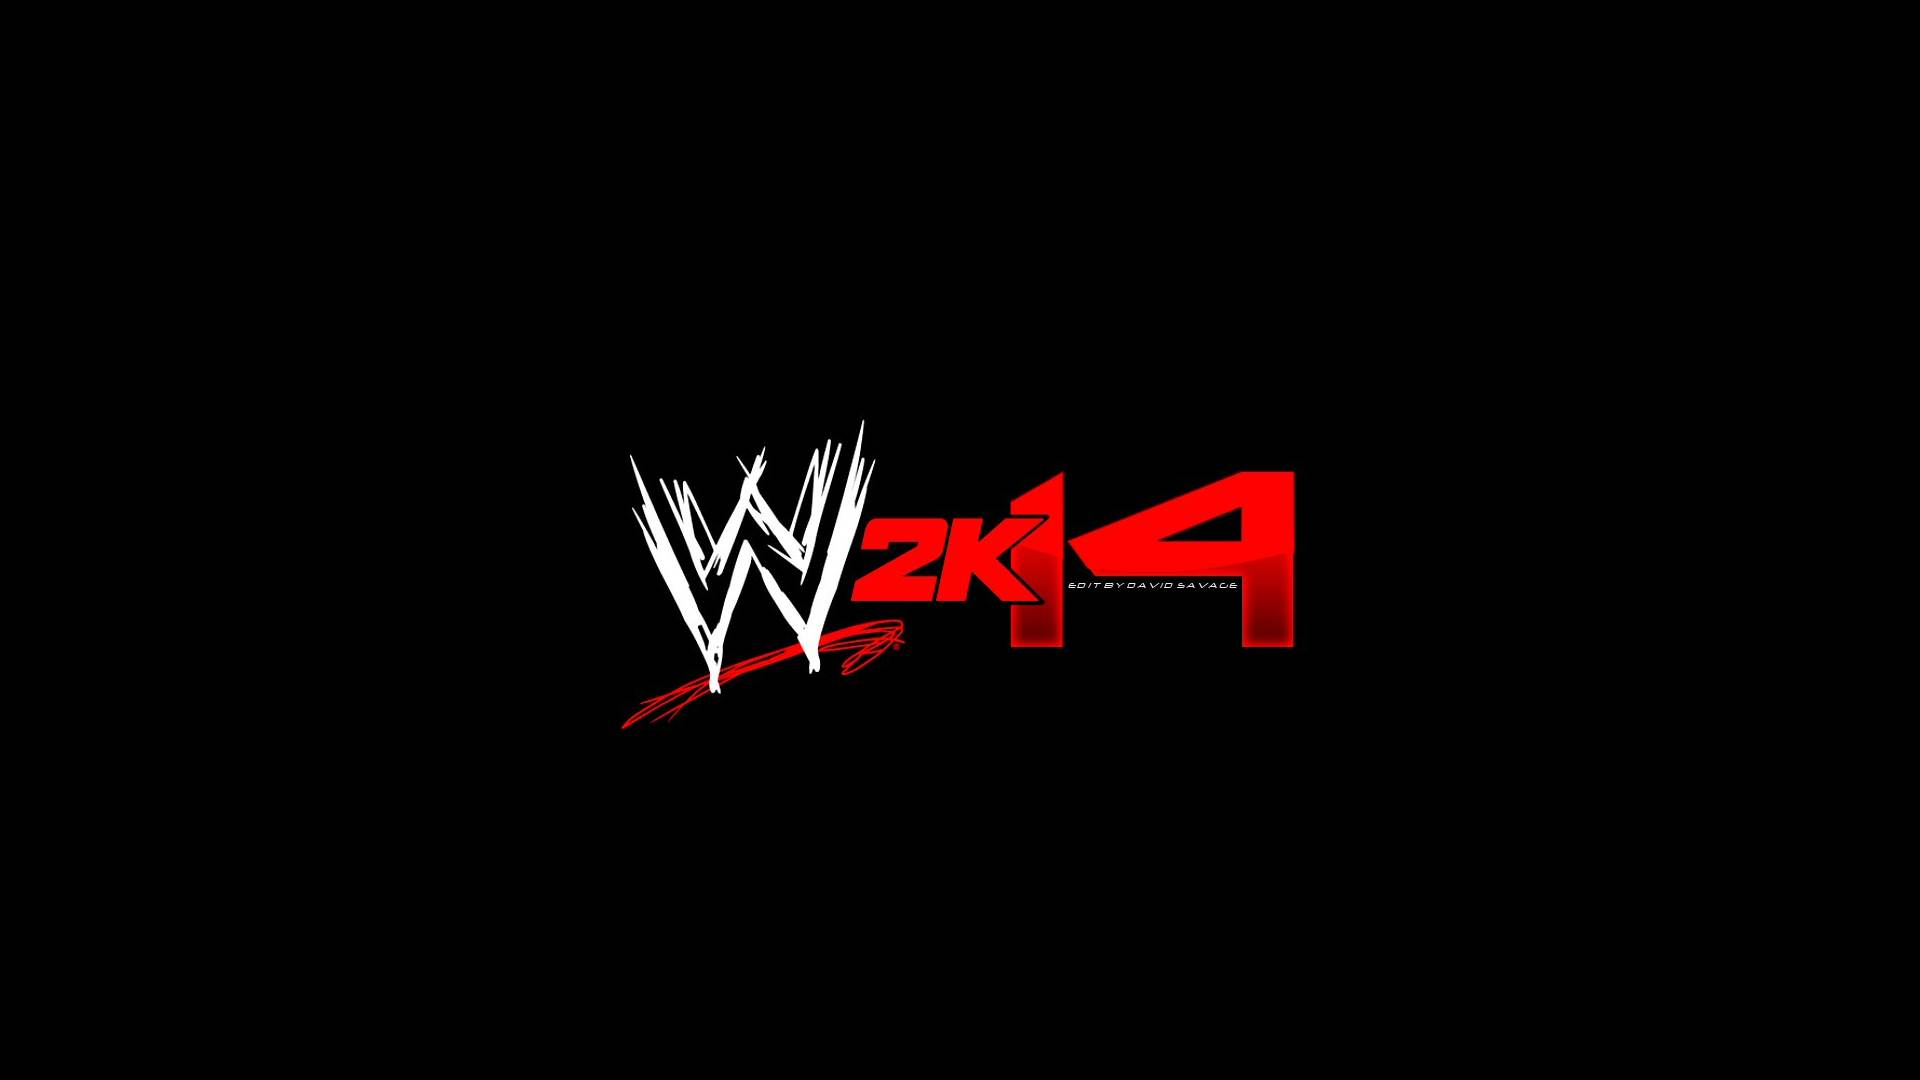 wwe 2k14 wallpaper in hd « GamingBolt.com: Video Game News ...